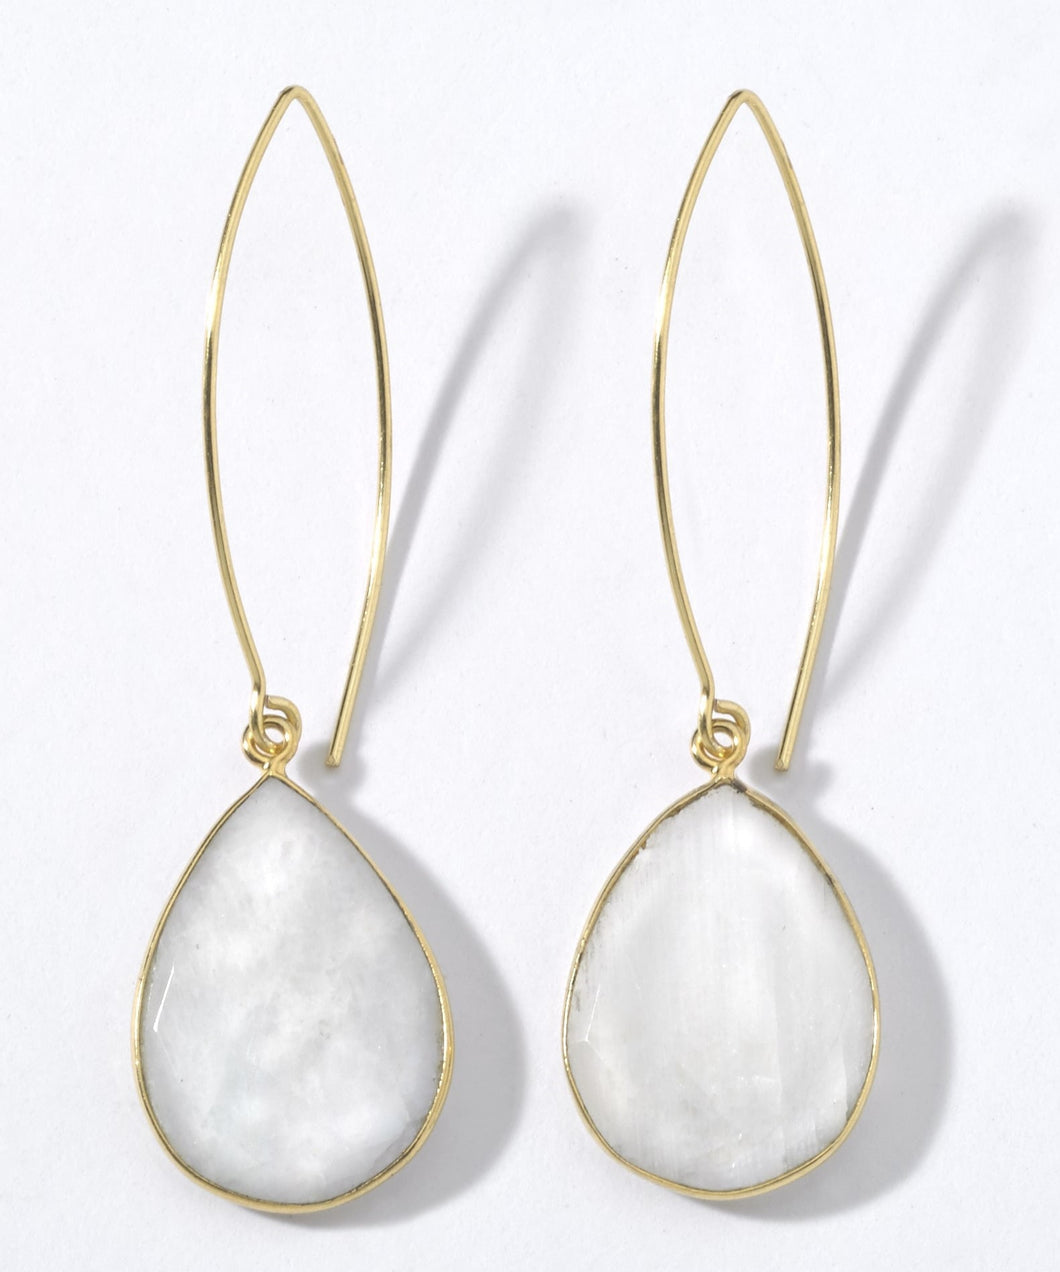 Moonstone teardrops on long ear wires